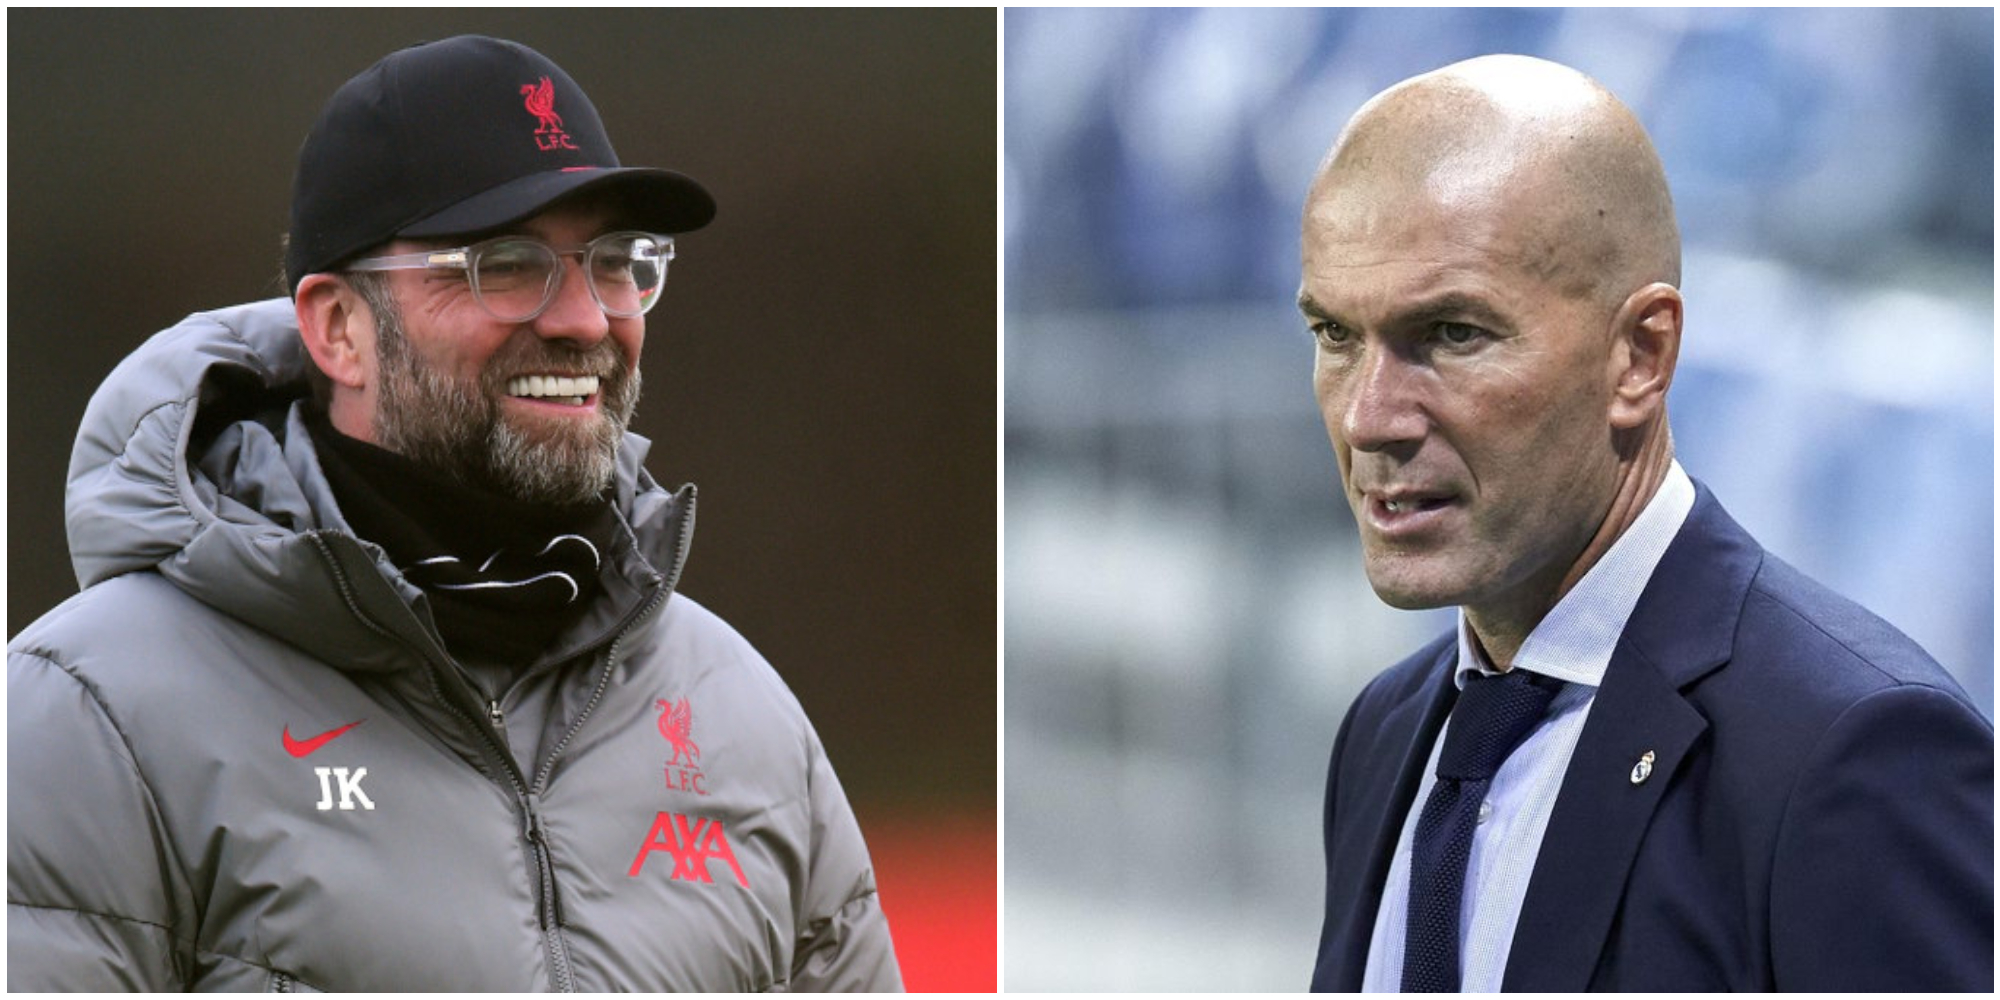 Liverpool handed fixture boost as Madrid play El Clasico between UCL quarter final legs while Reds have Aston Villa